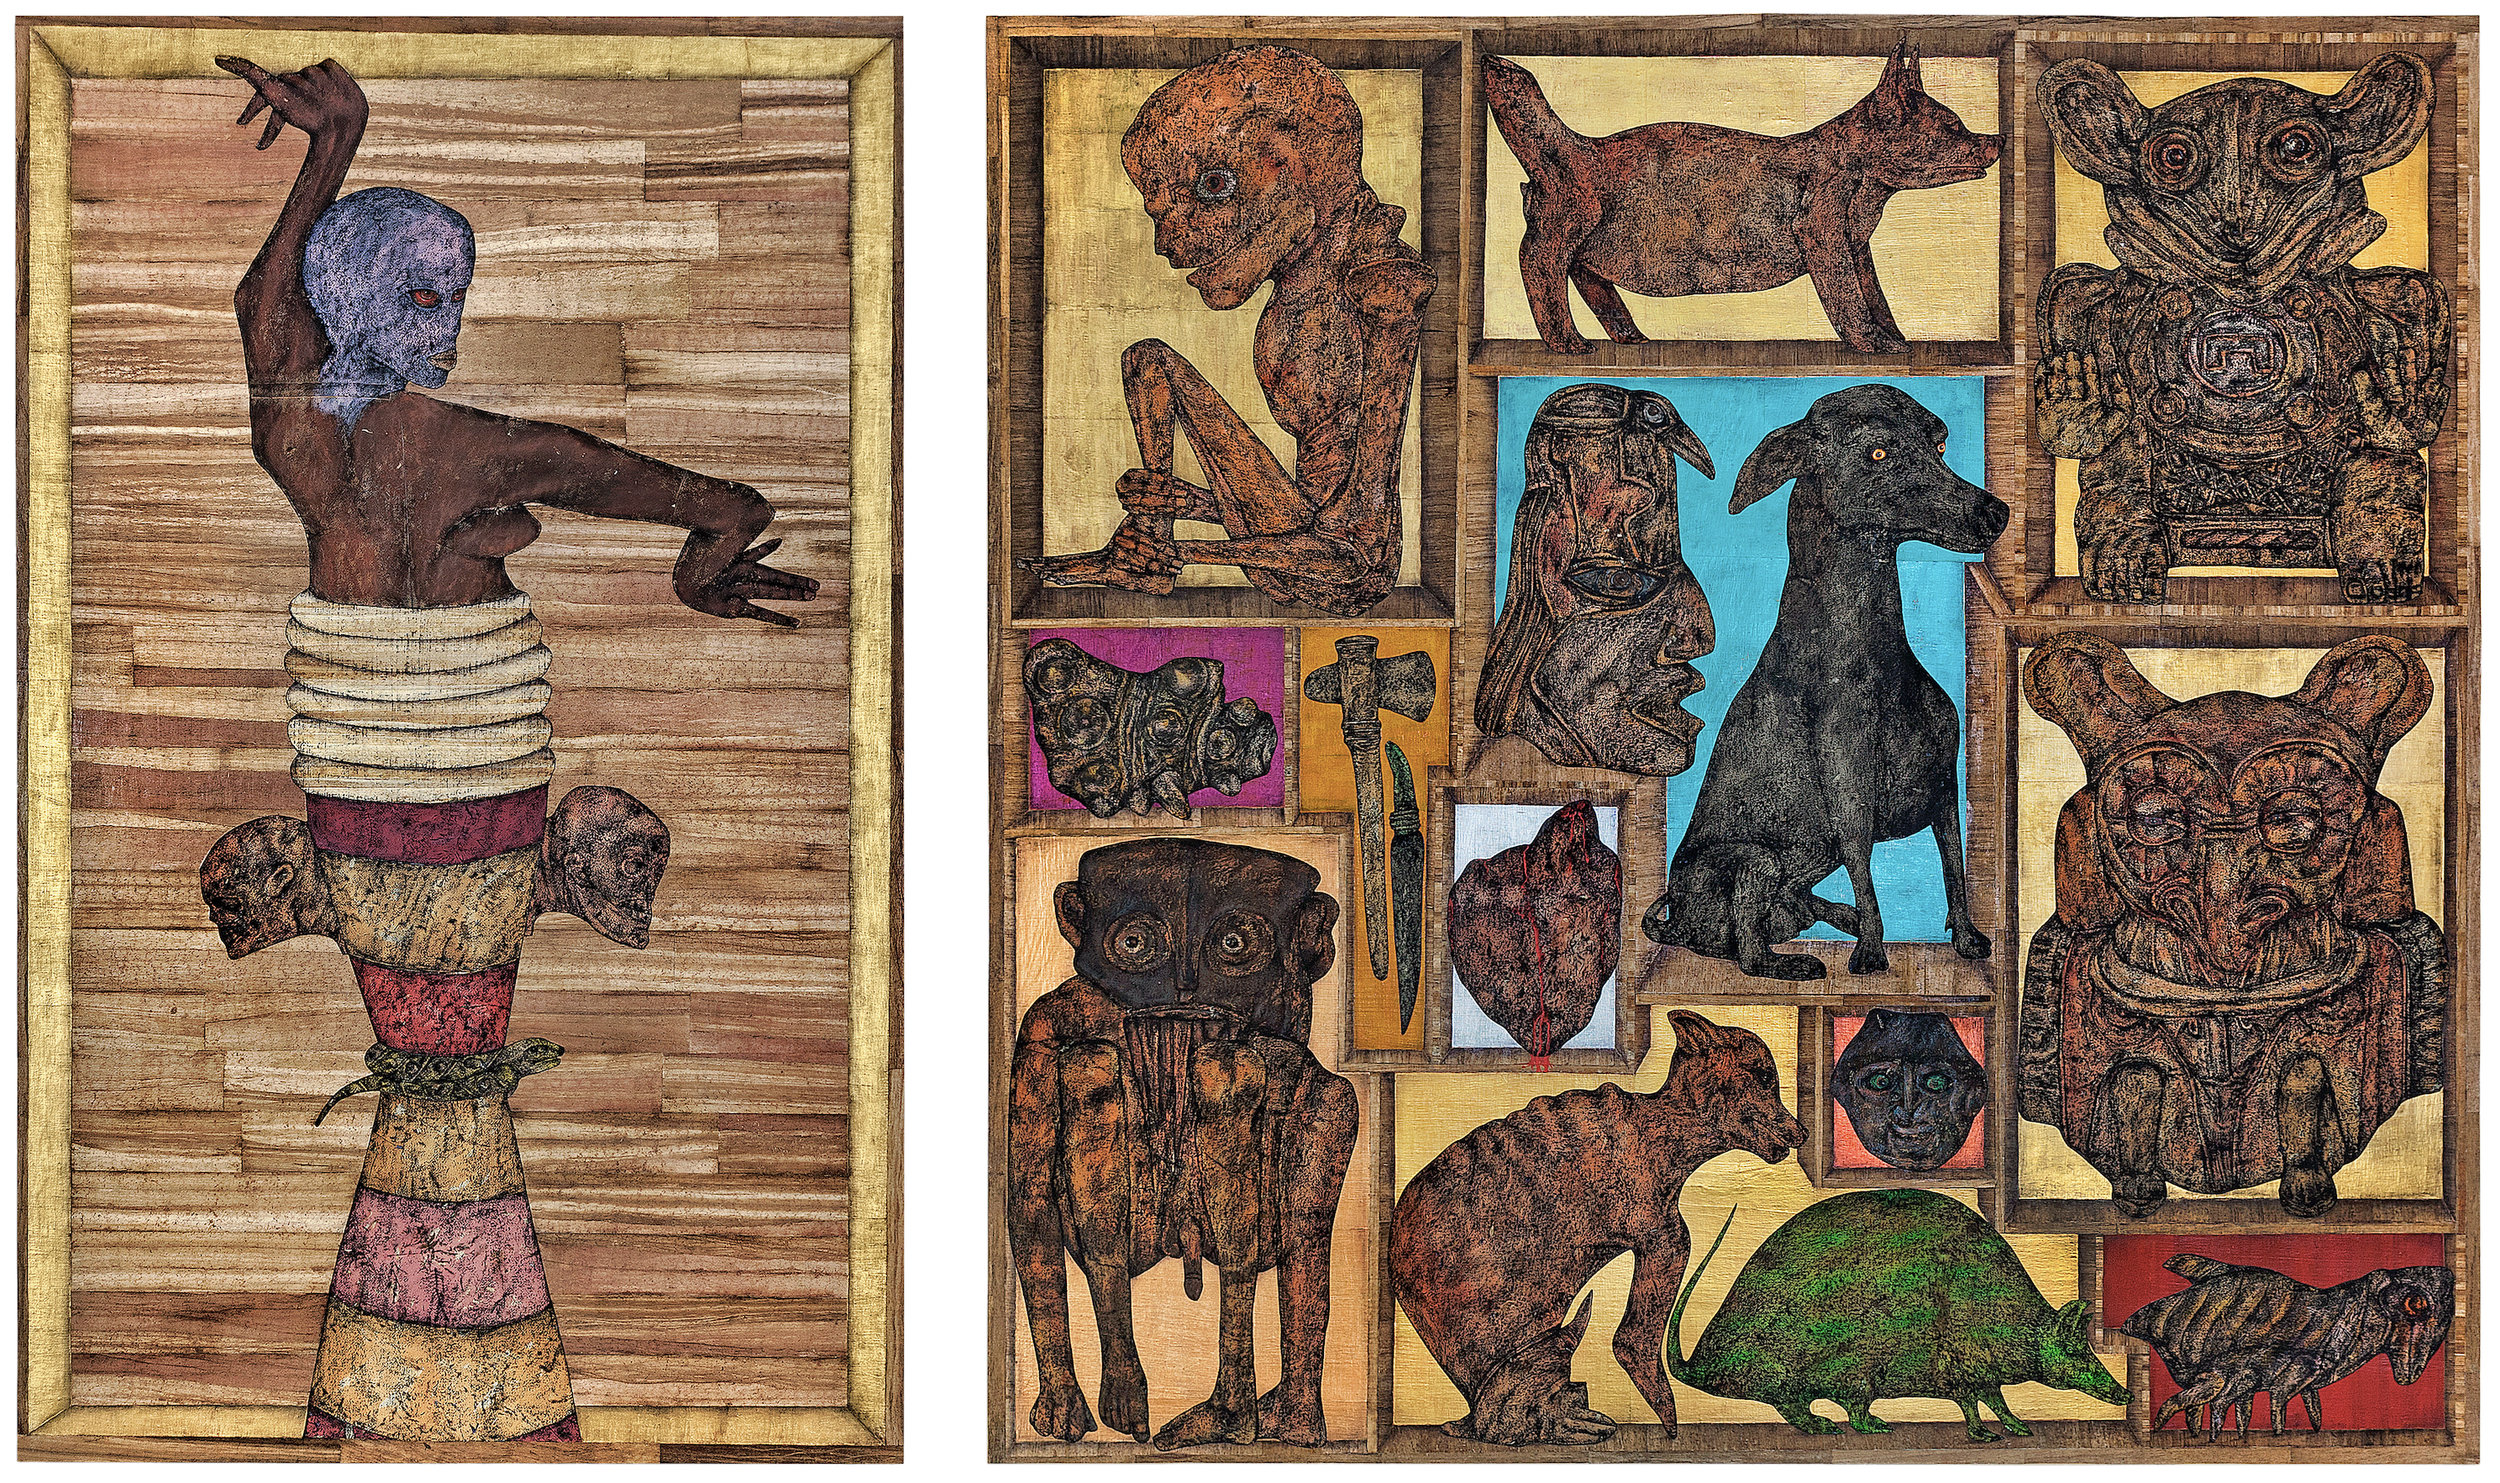 Carlos Fragoso  (B. 1954)  Retablo , 2017 Acrylic, oil, charcoal, metal leaf, papyrus and collage on paper Diptych: Left Panel: 72 x 38 inches Right panel: 72 x 72 inches Overall: 72 x 110 inches